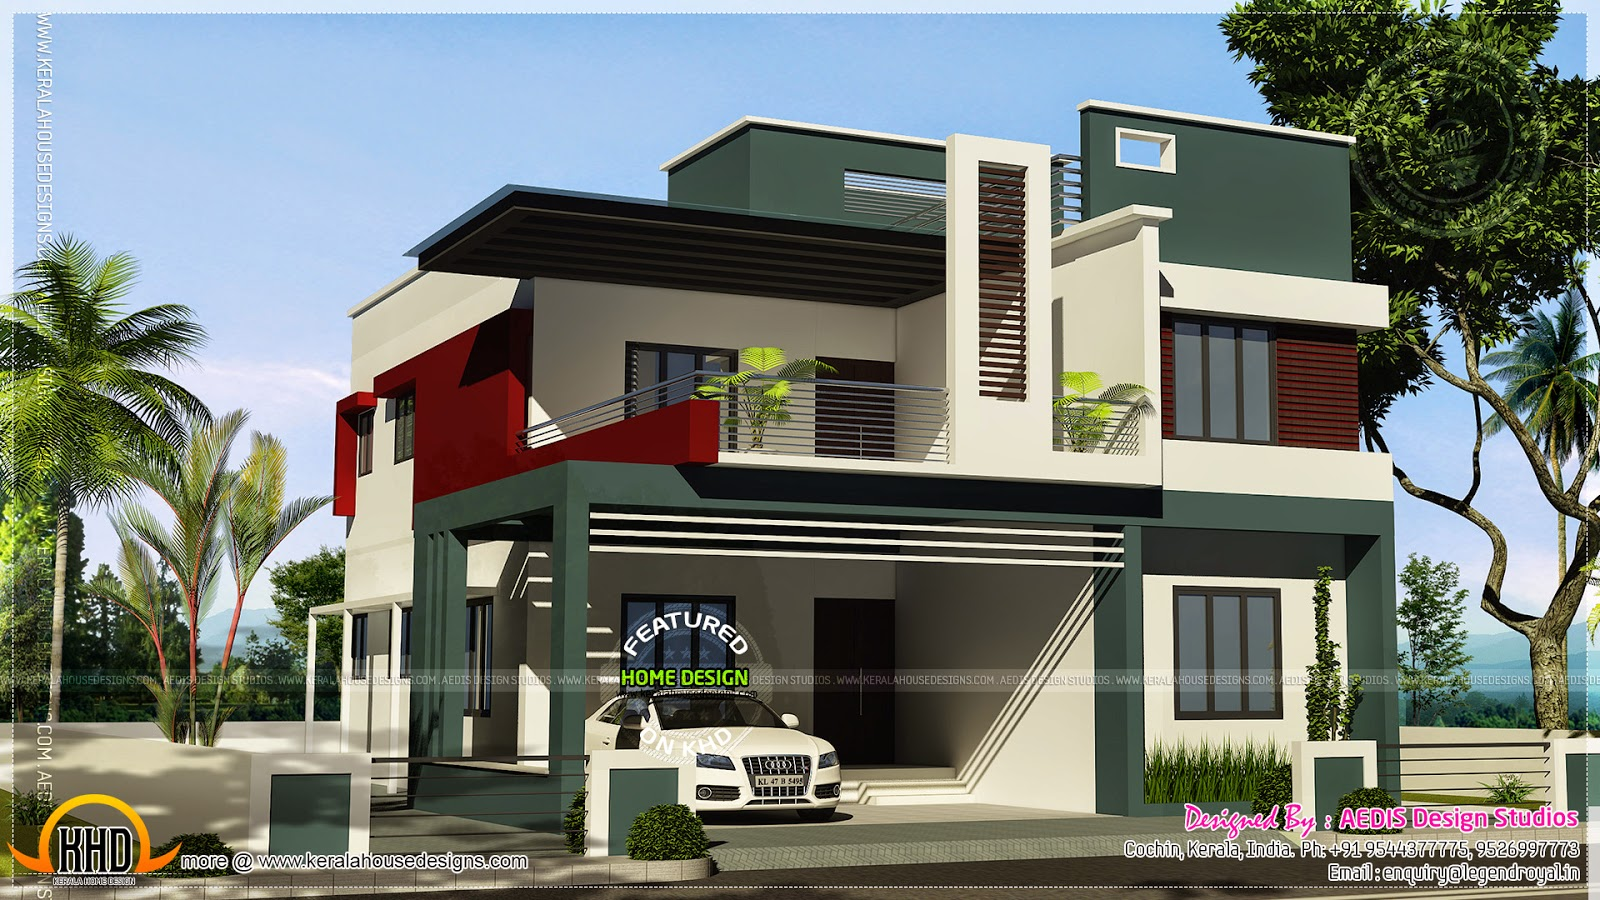 900 sq ft duplex house plans in india lemonade mag com